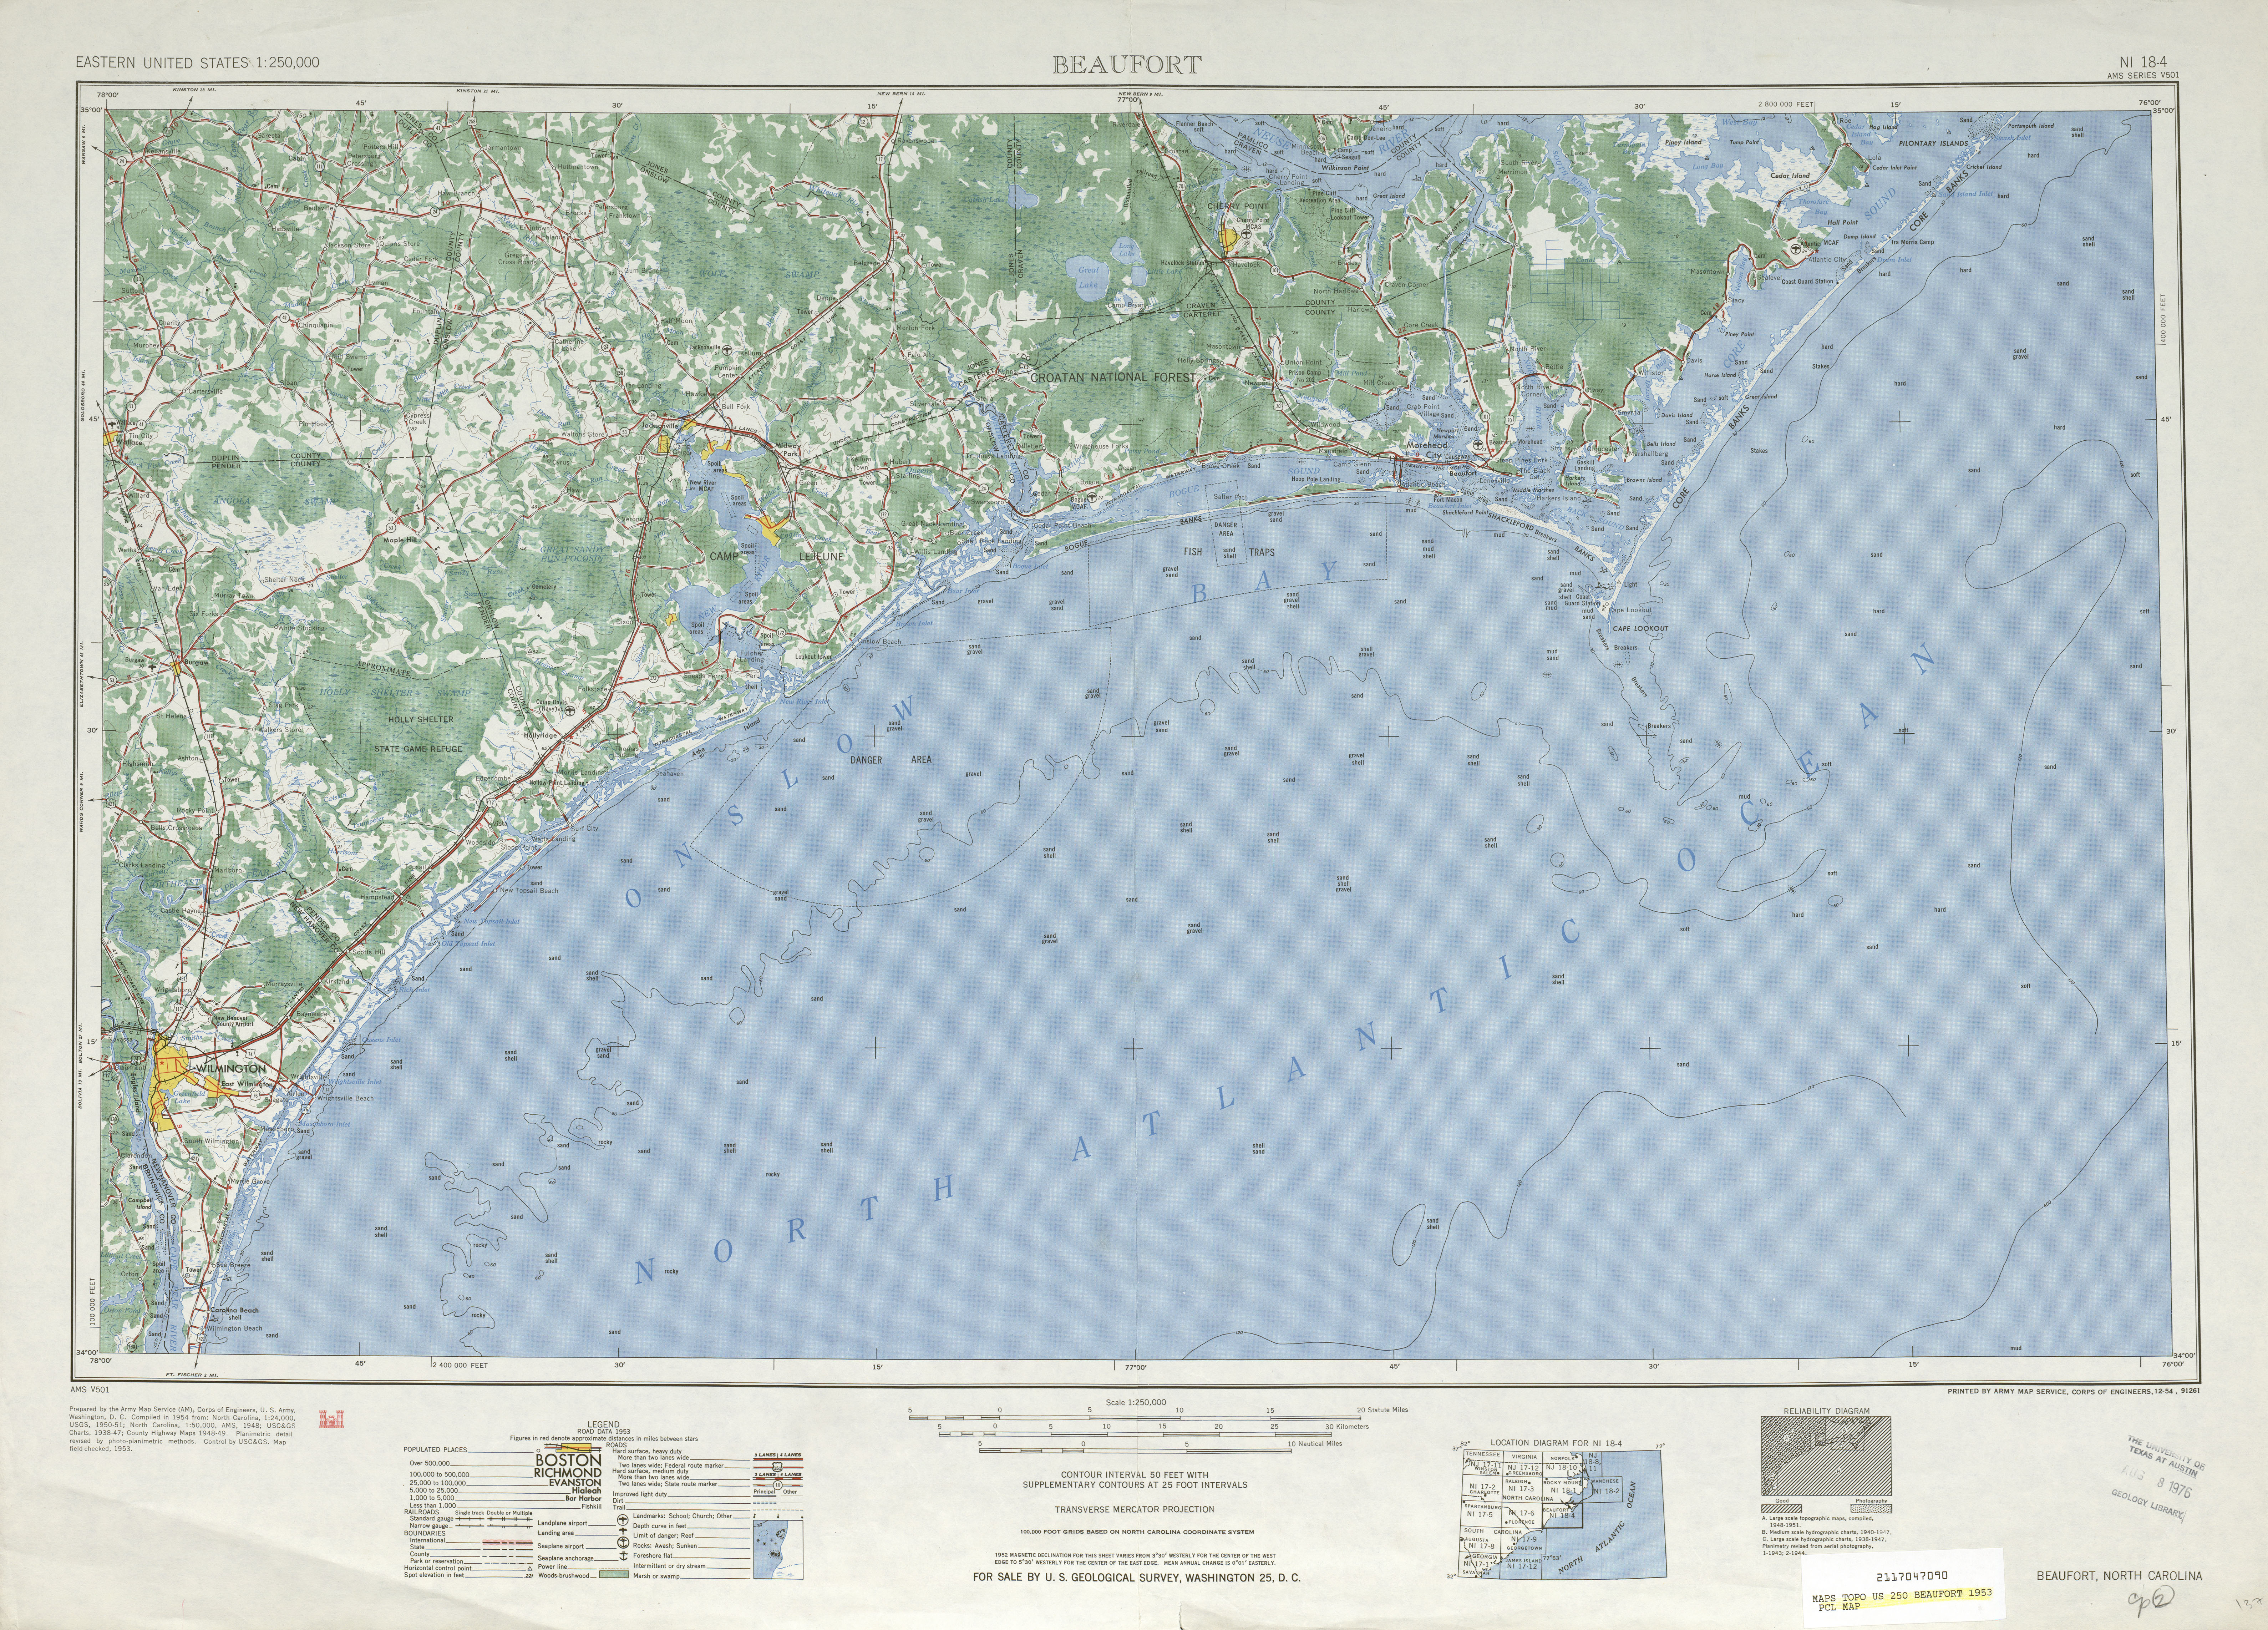 Beaufort Topographic Map Sheet, United States 1953